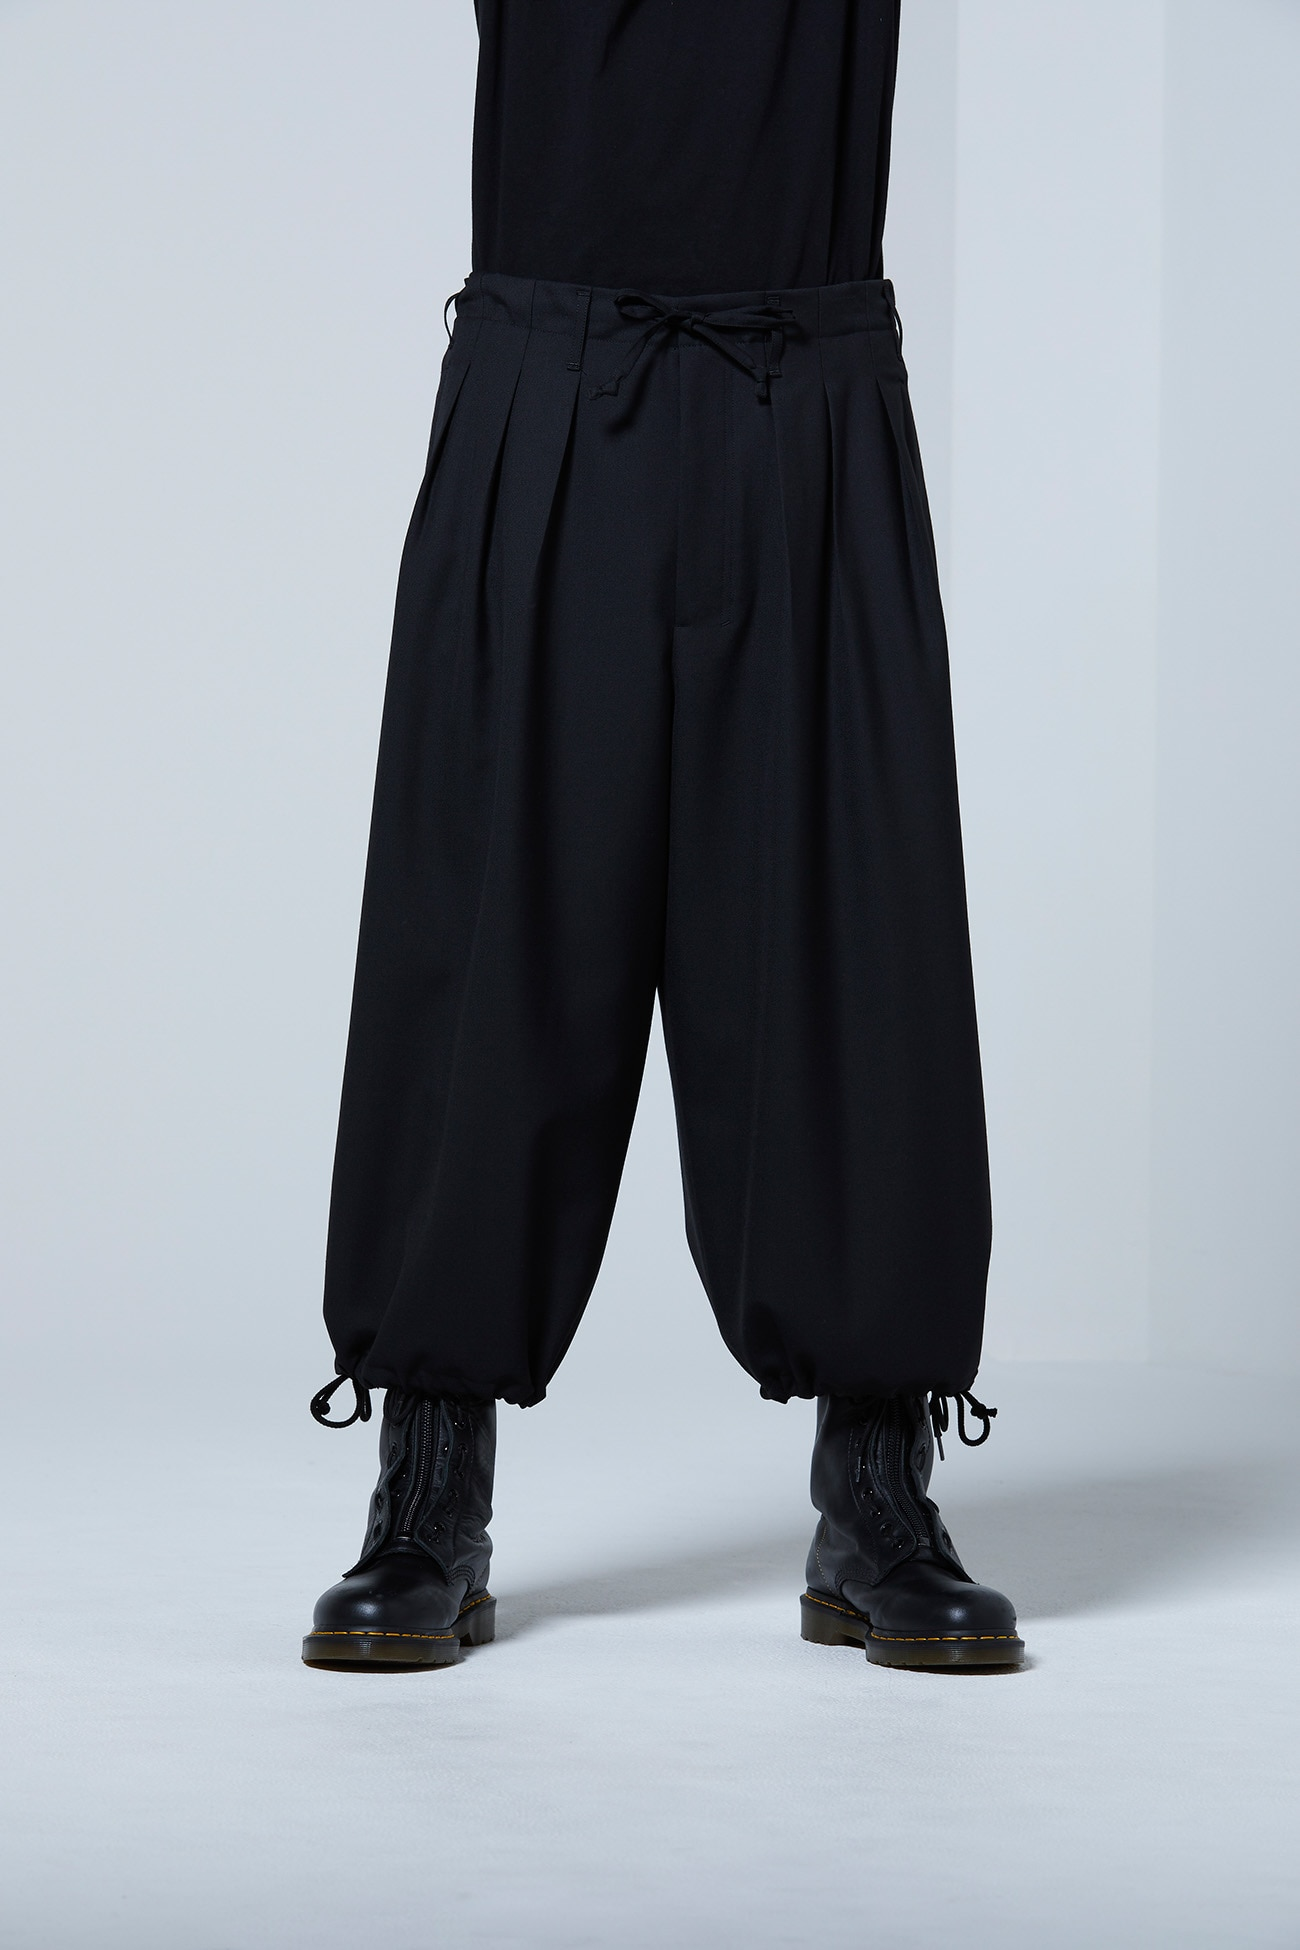 T / W_ gaberdine Balloon Pants